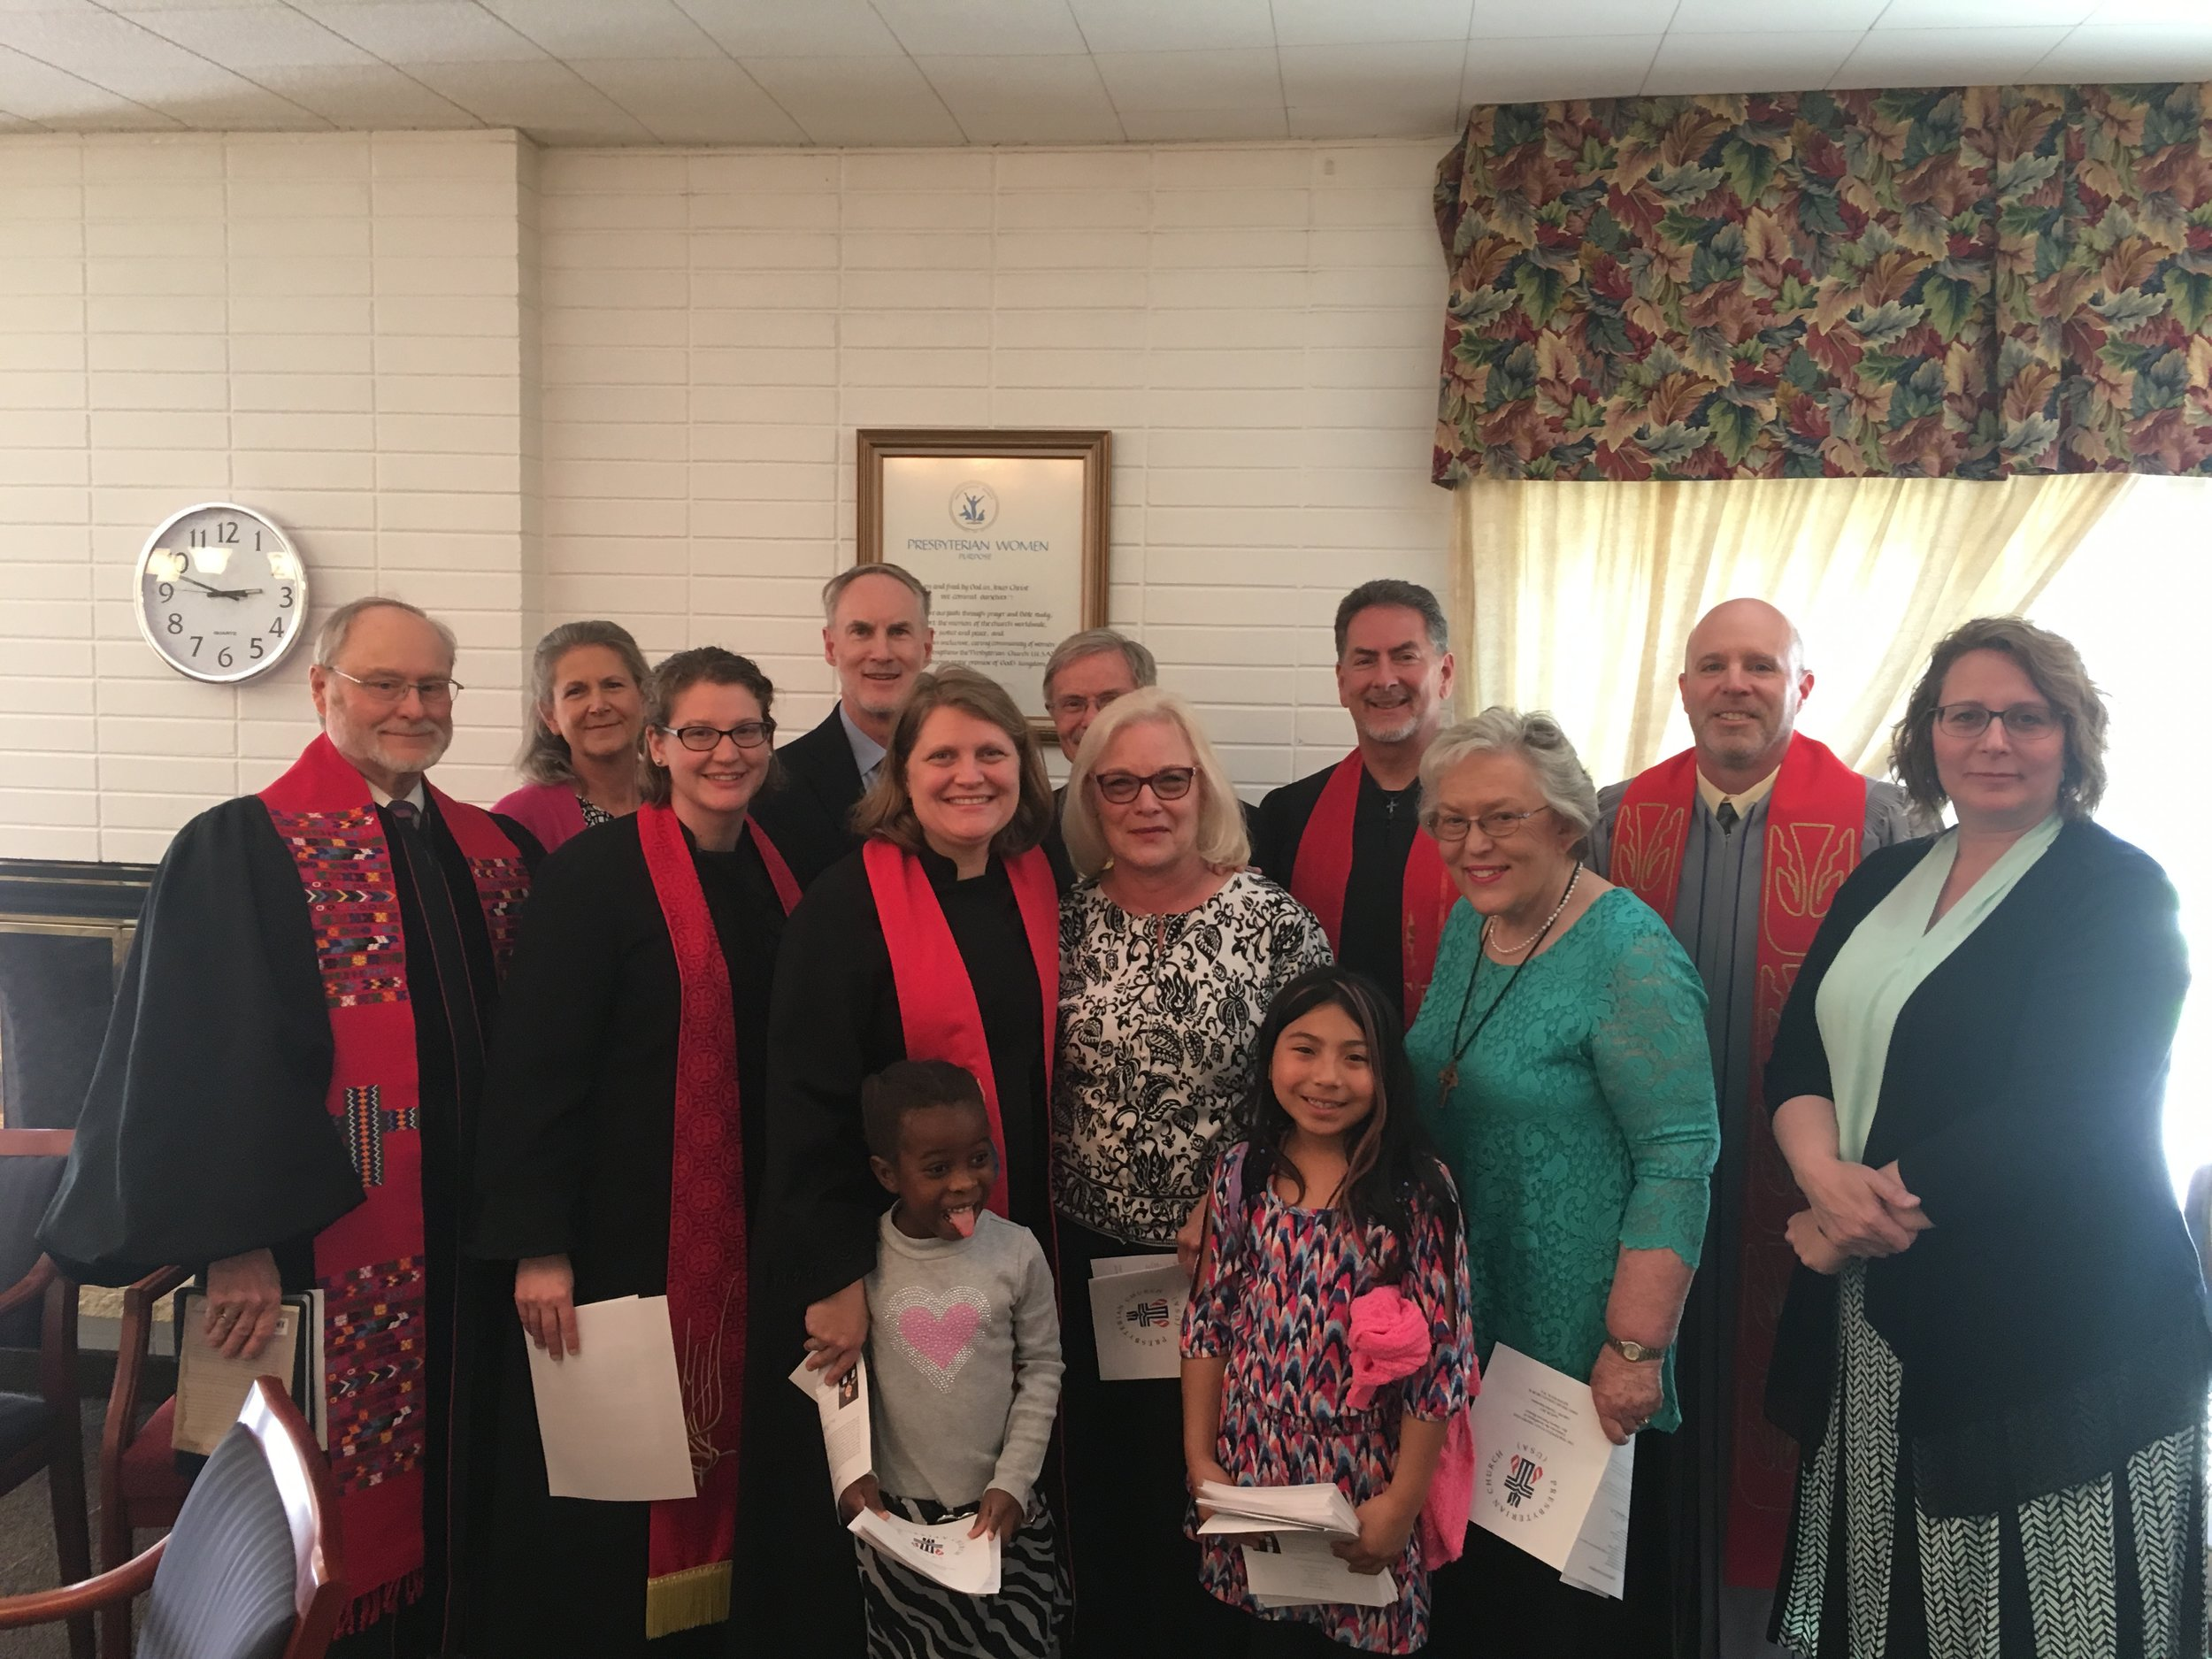 Installation Commission for Rev. Hanna Peterson-Shearer